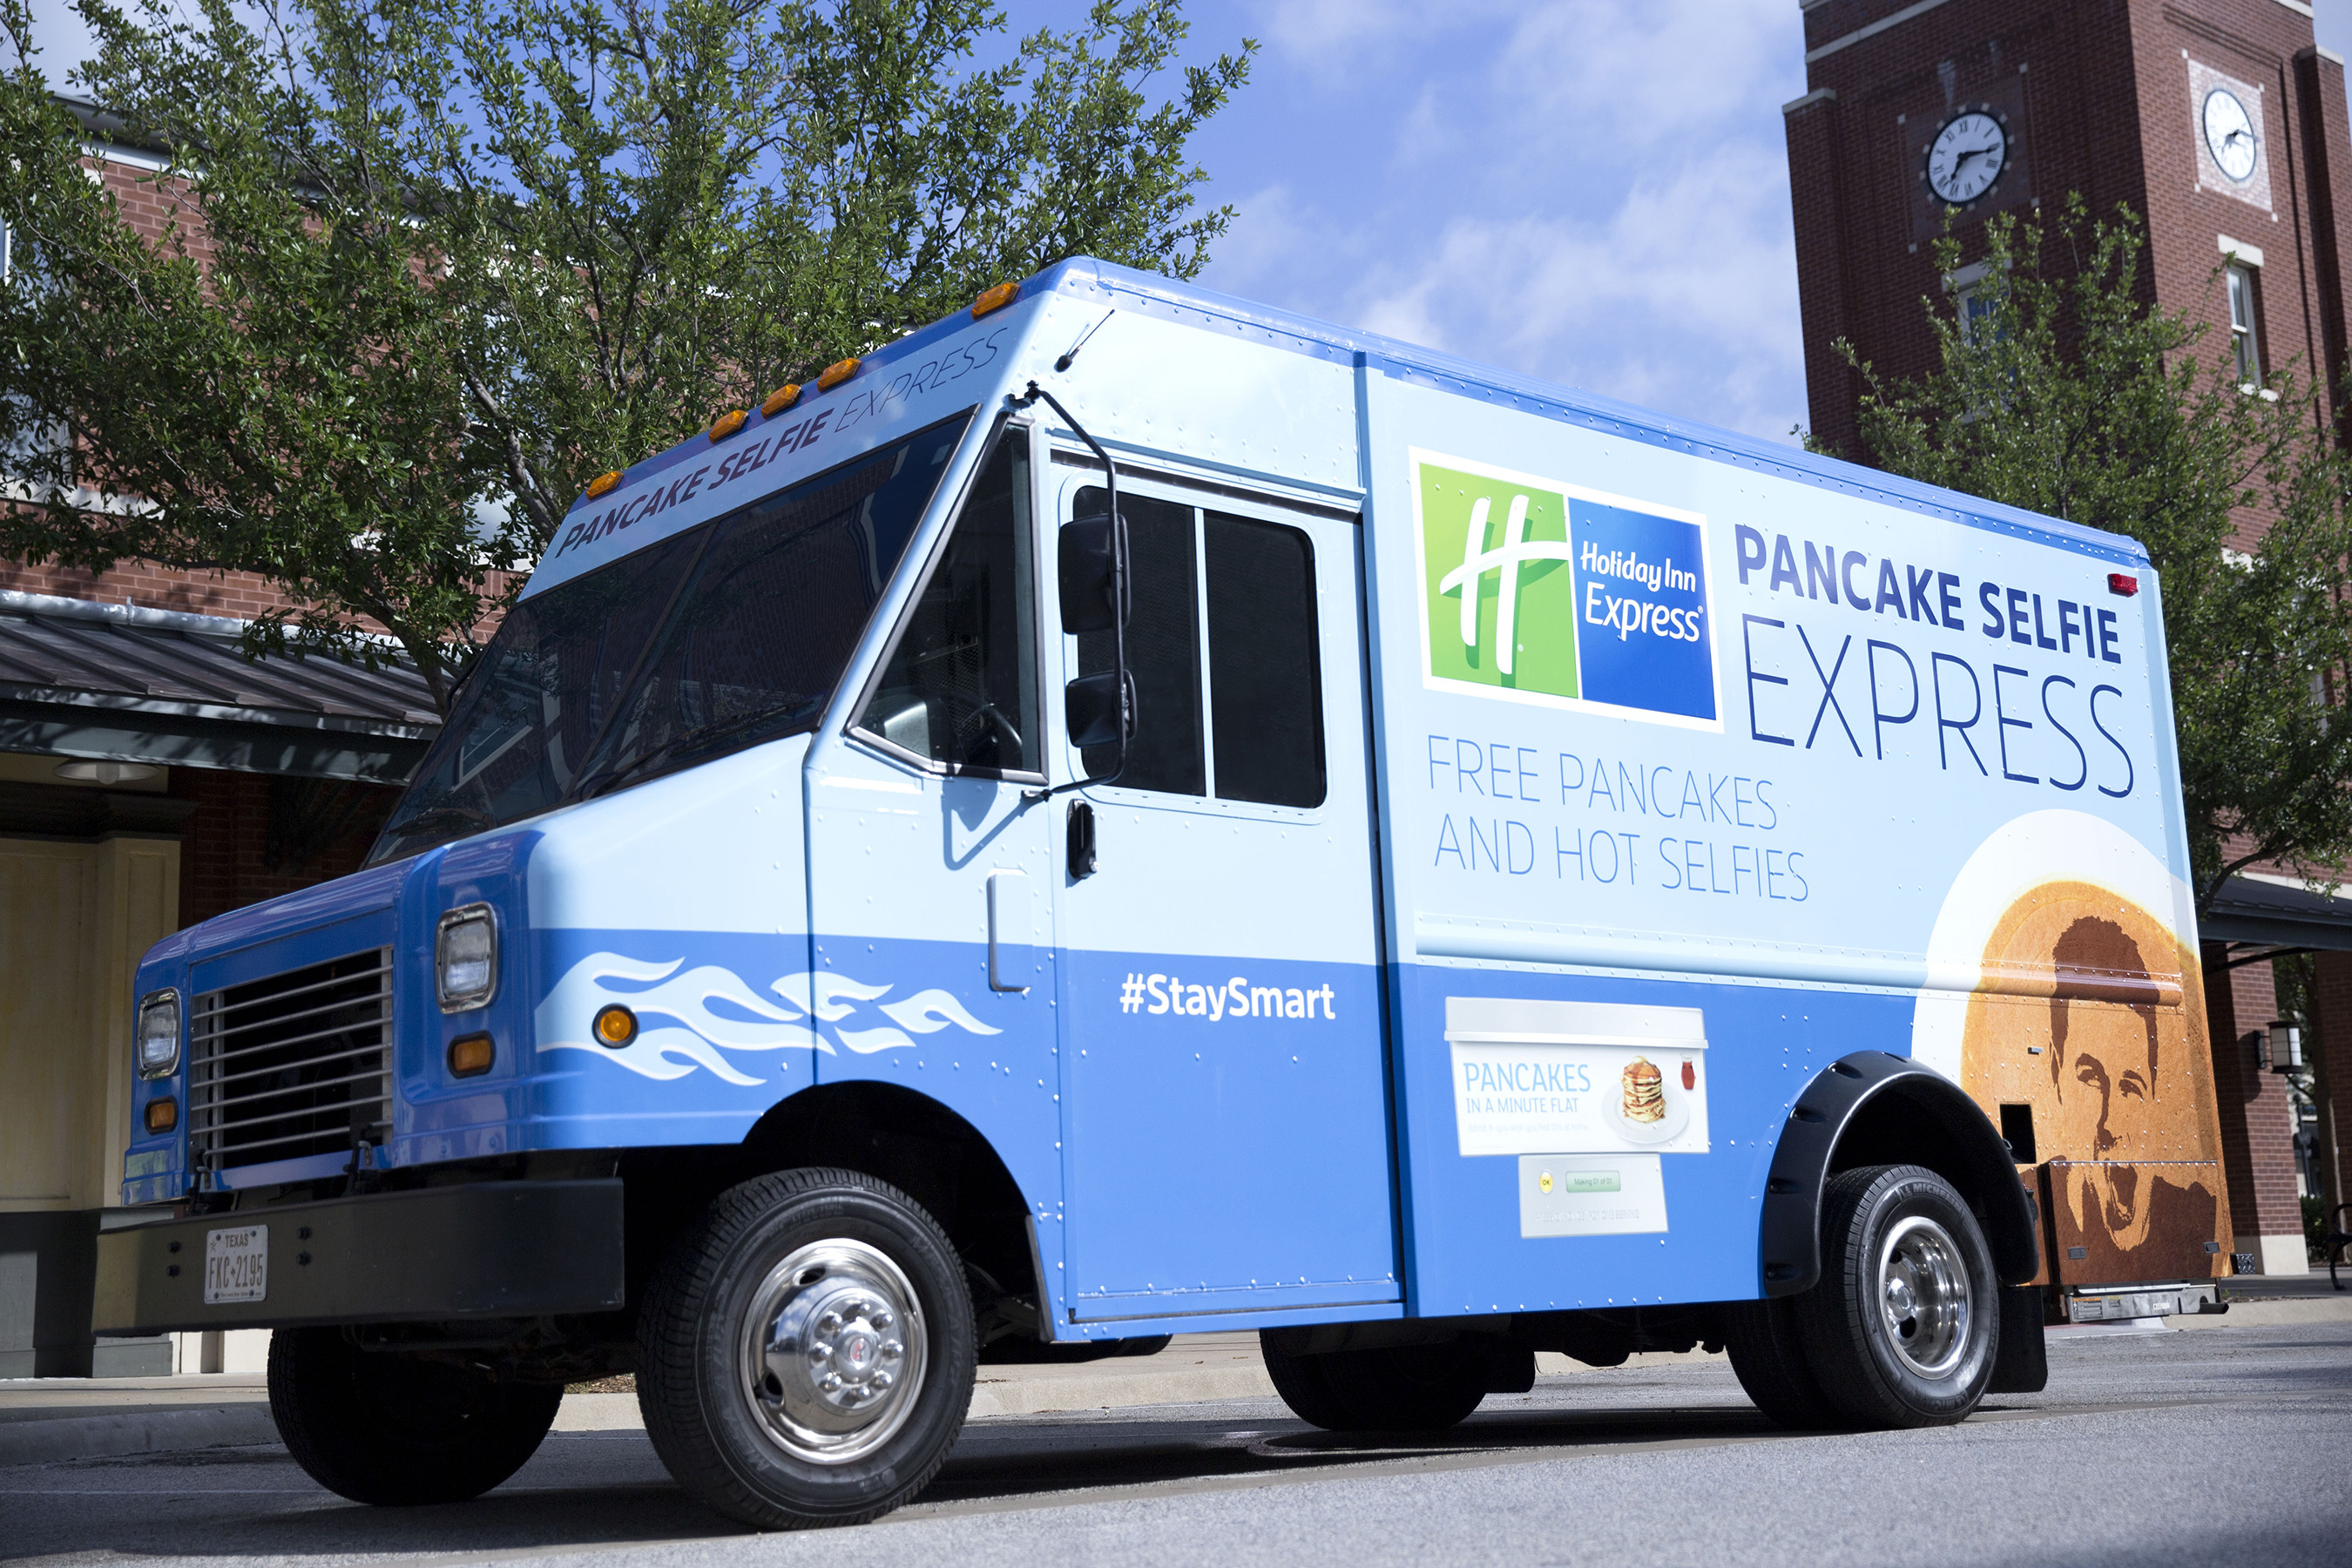 Holiday Inn Express® brand announces Pancake Selfie Express mobile breakfast tour on select Southeastern Conference football games this fall